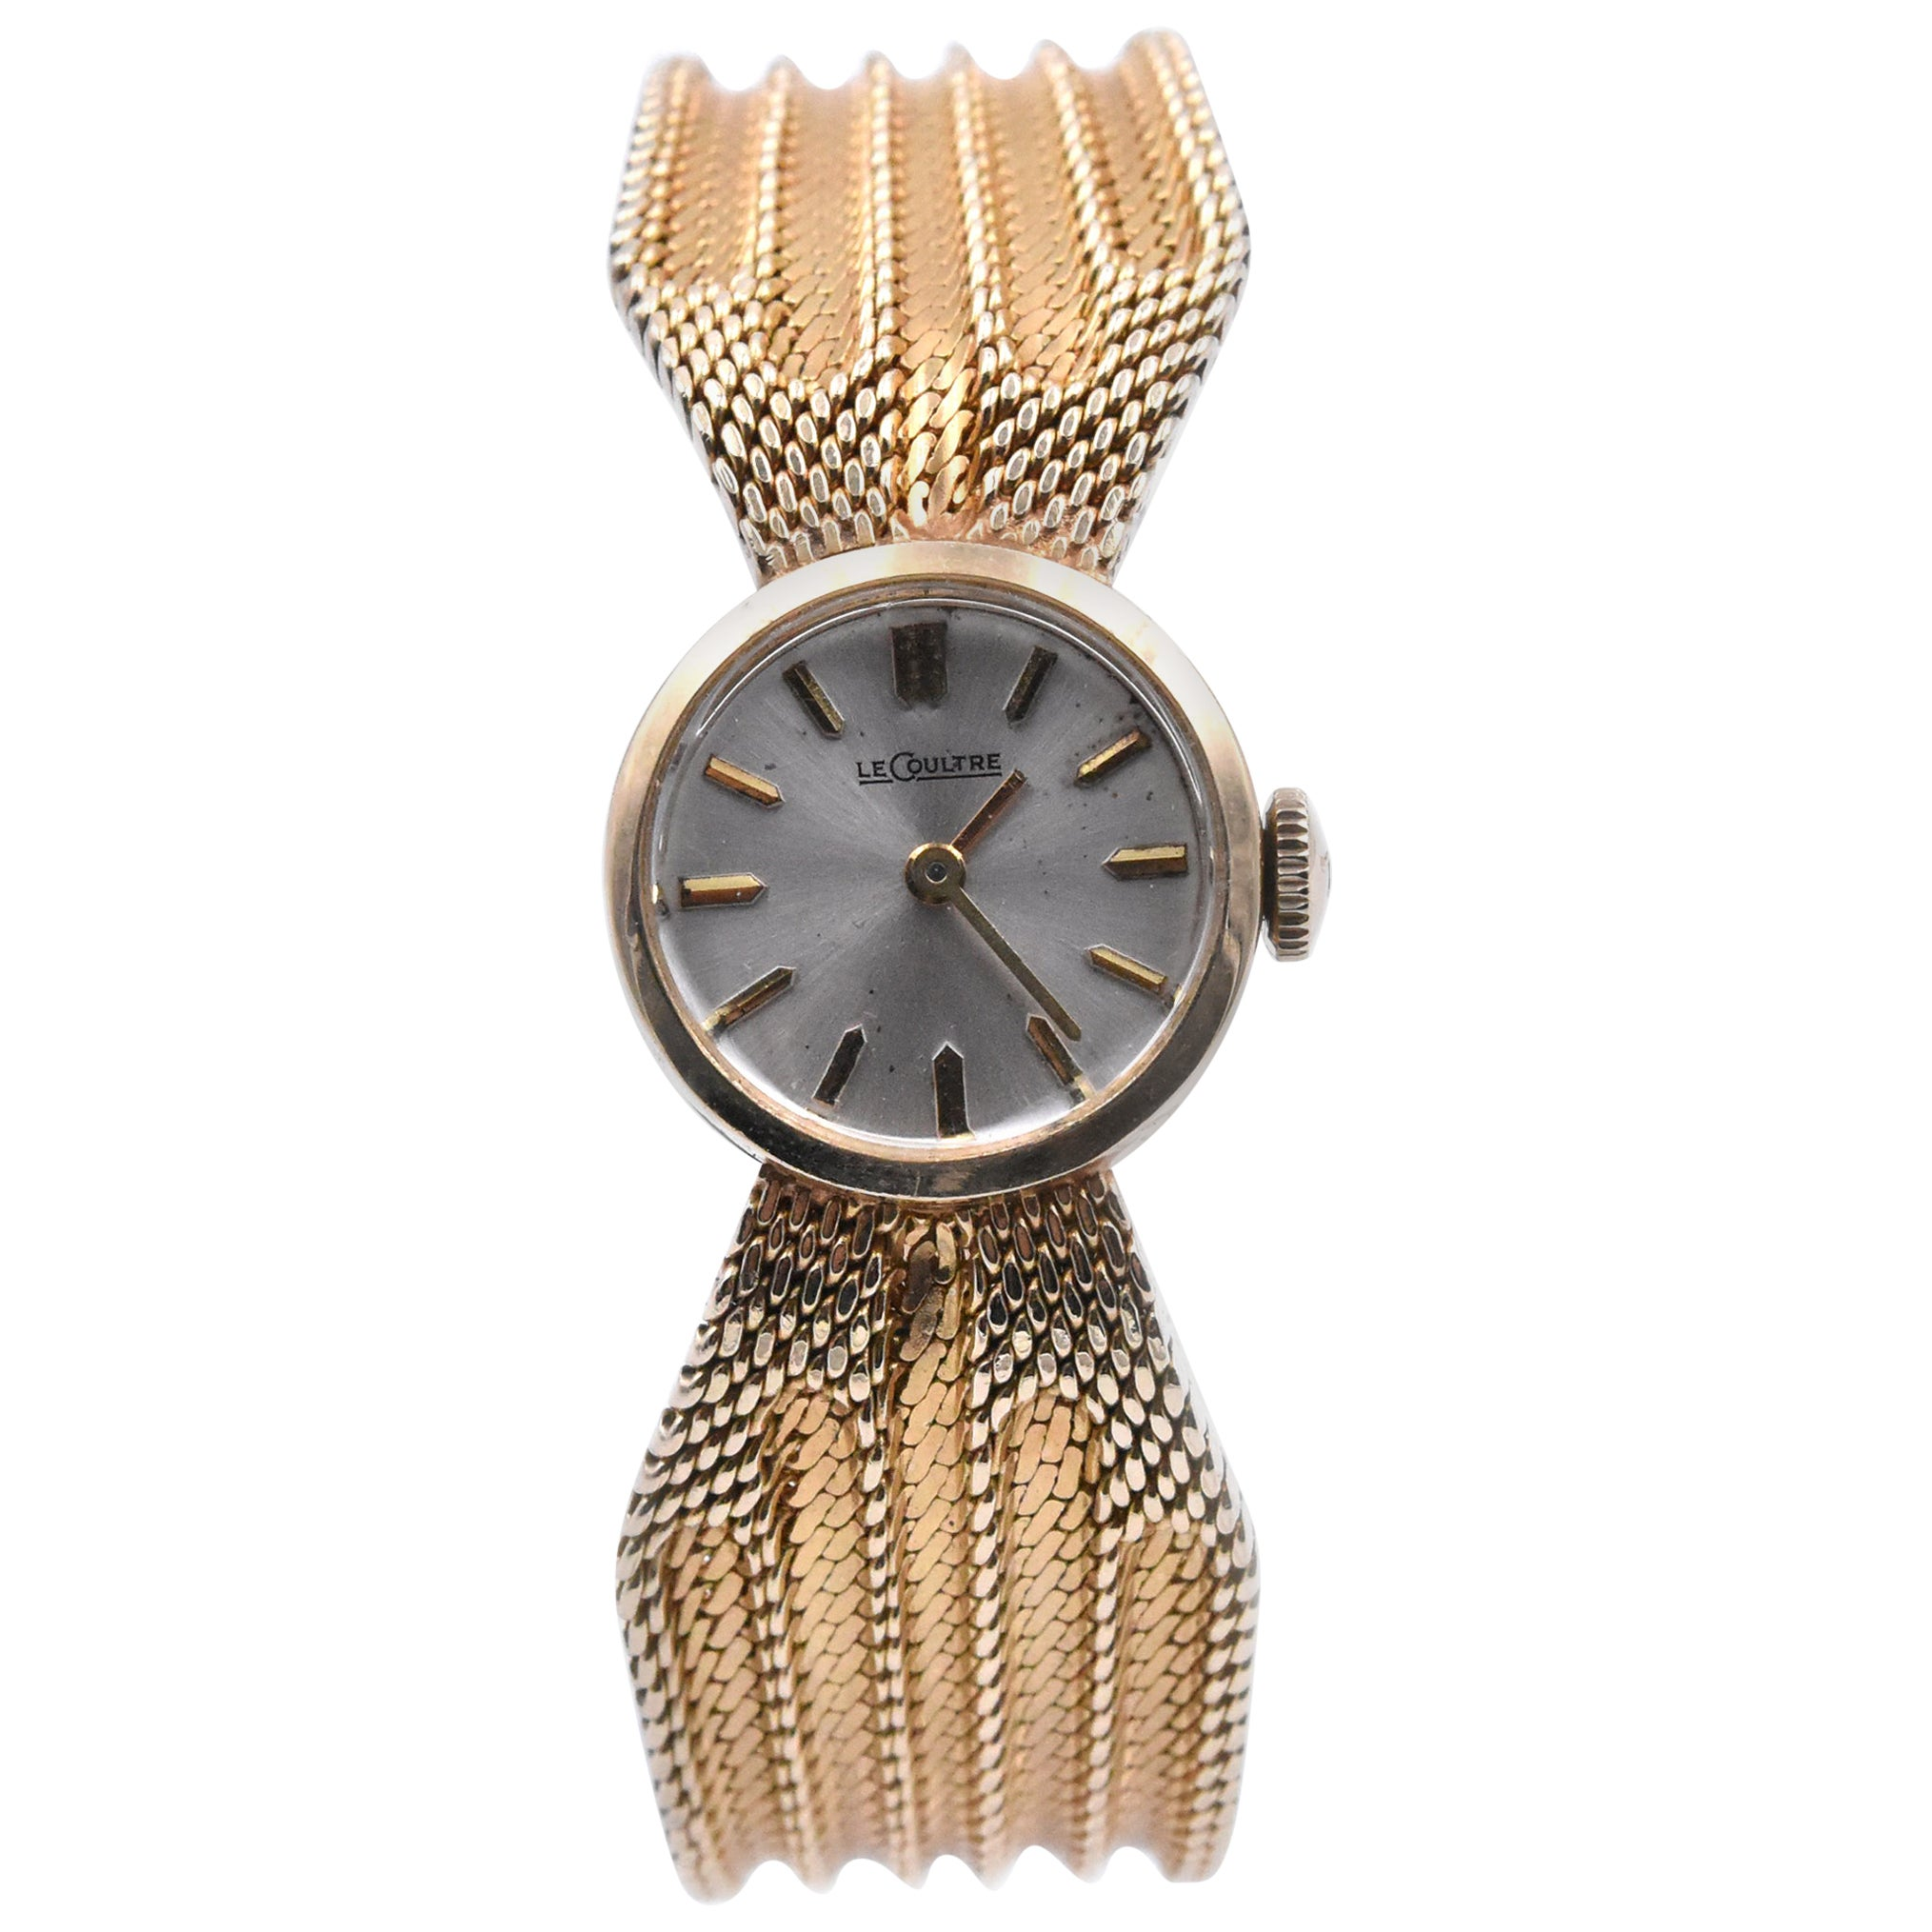 Jaeger-LeCoultre 14 Karat Yellow Gold Ladies Dress Watch